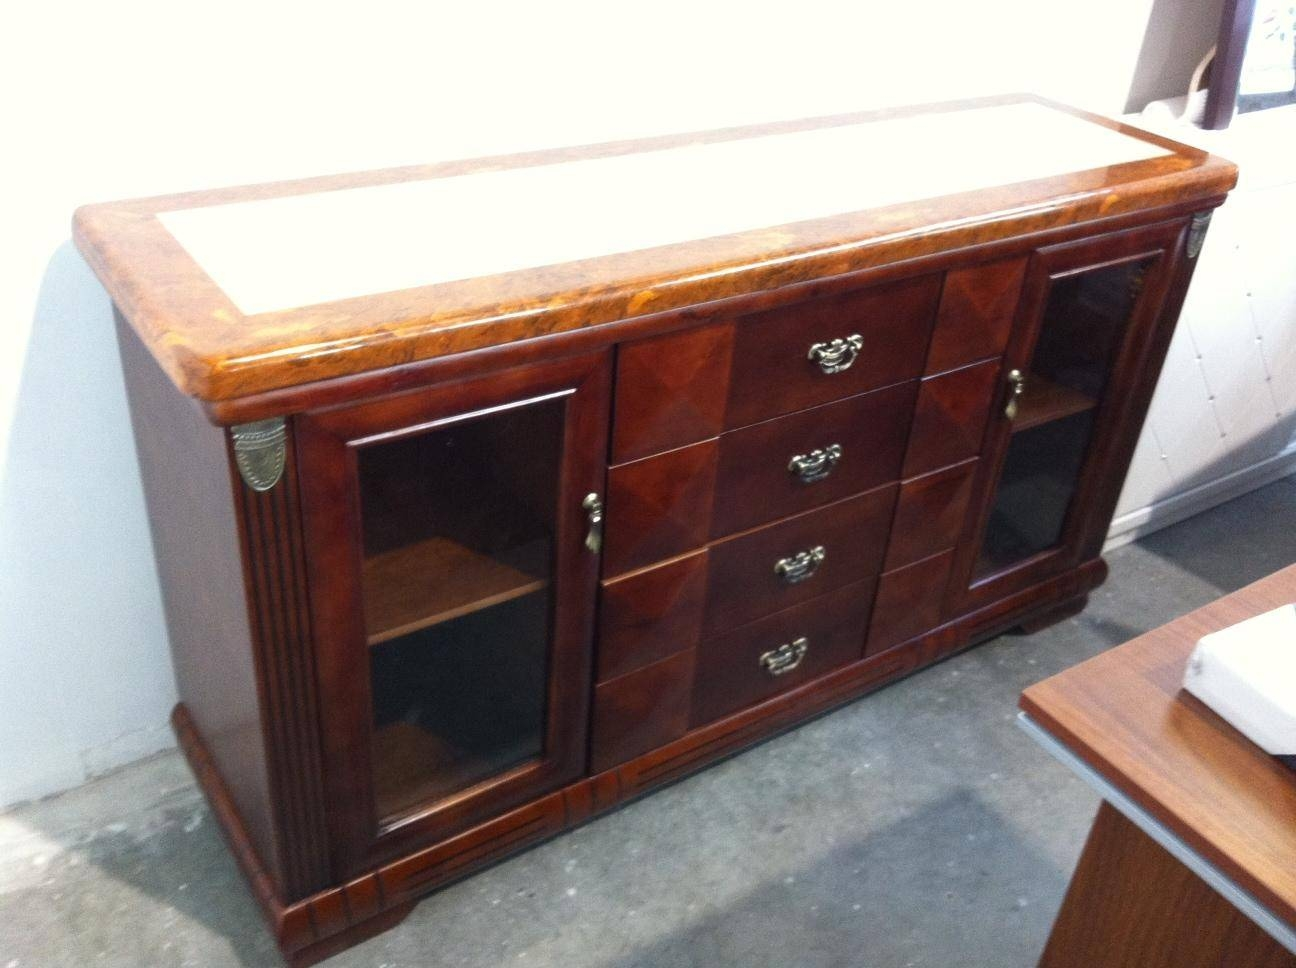 Dining Room Buffet/sideboard Direct Warehouse Sale! within Dining Room Buffets Sideboards (Image 9 of 15)